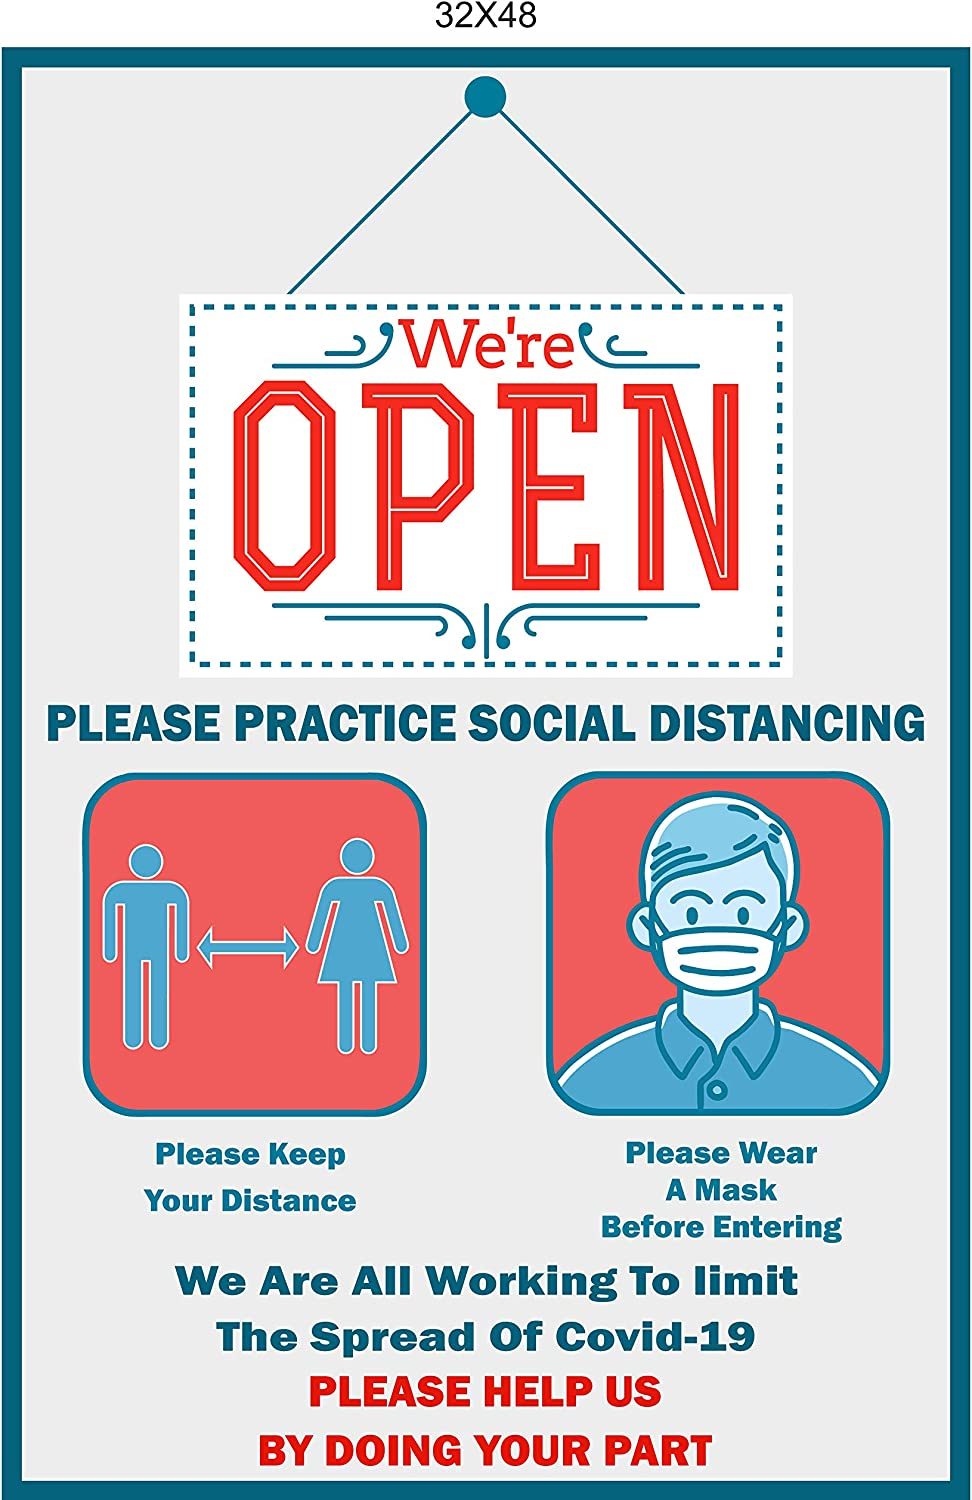 32x48 with Grommets Every 2-3 Feet were Open Sign Were Open Sign Please Practice Social Distancing Sign Please Wear A Face Mask Vinyl Banner Social Distancing Sign Were Open Banner